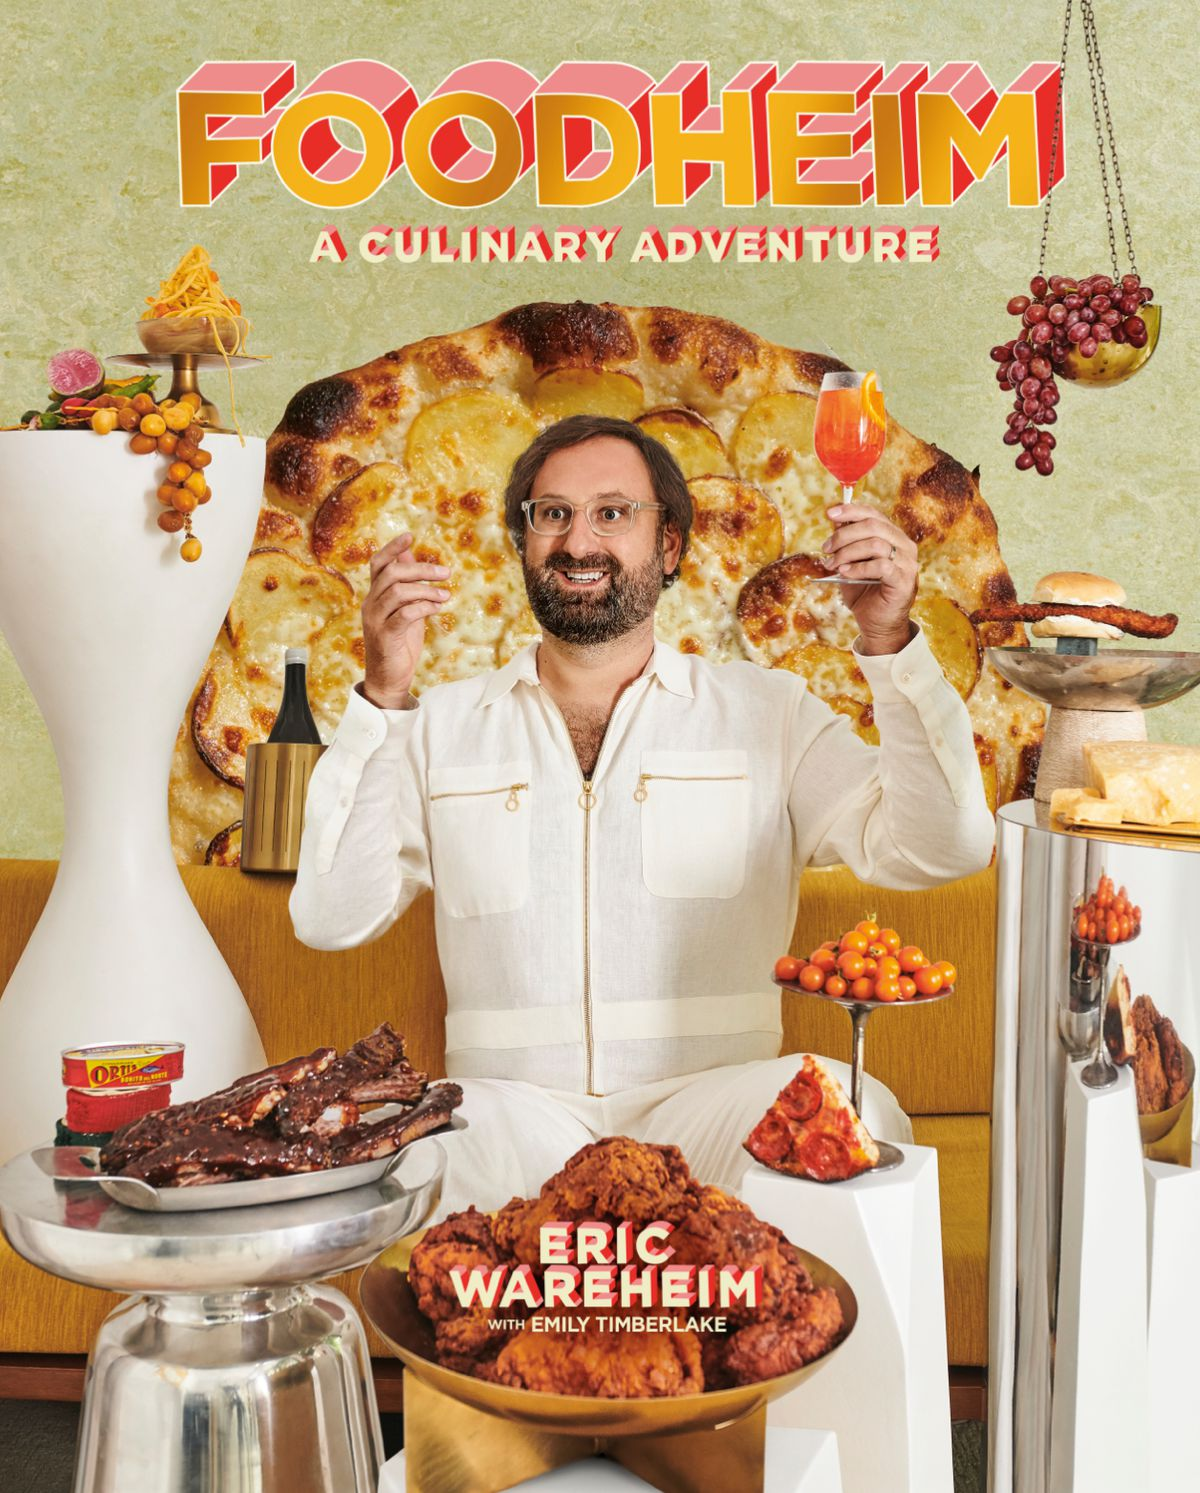 A man dressed in white, Eric Wareheim, raises a glass of aperol spritz while surrounded by opulent foods